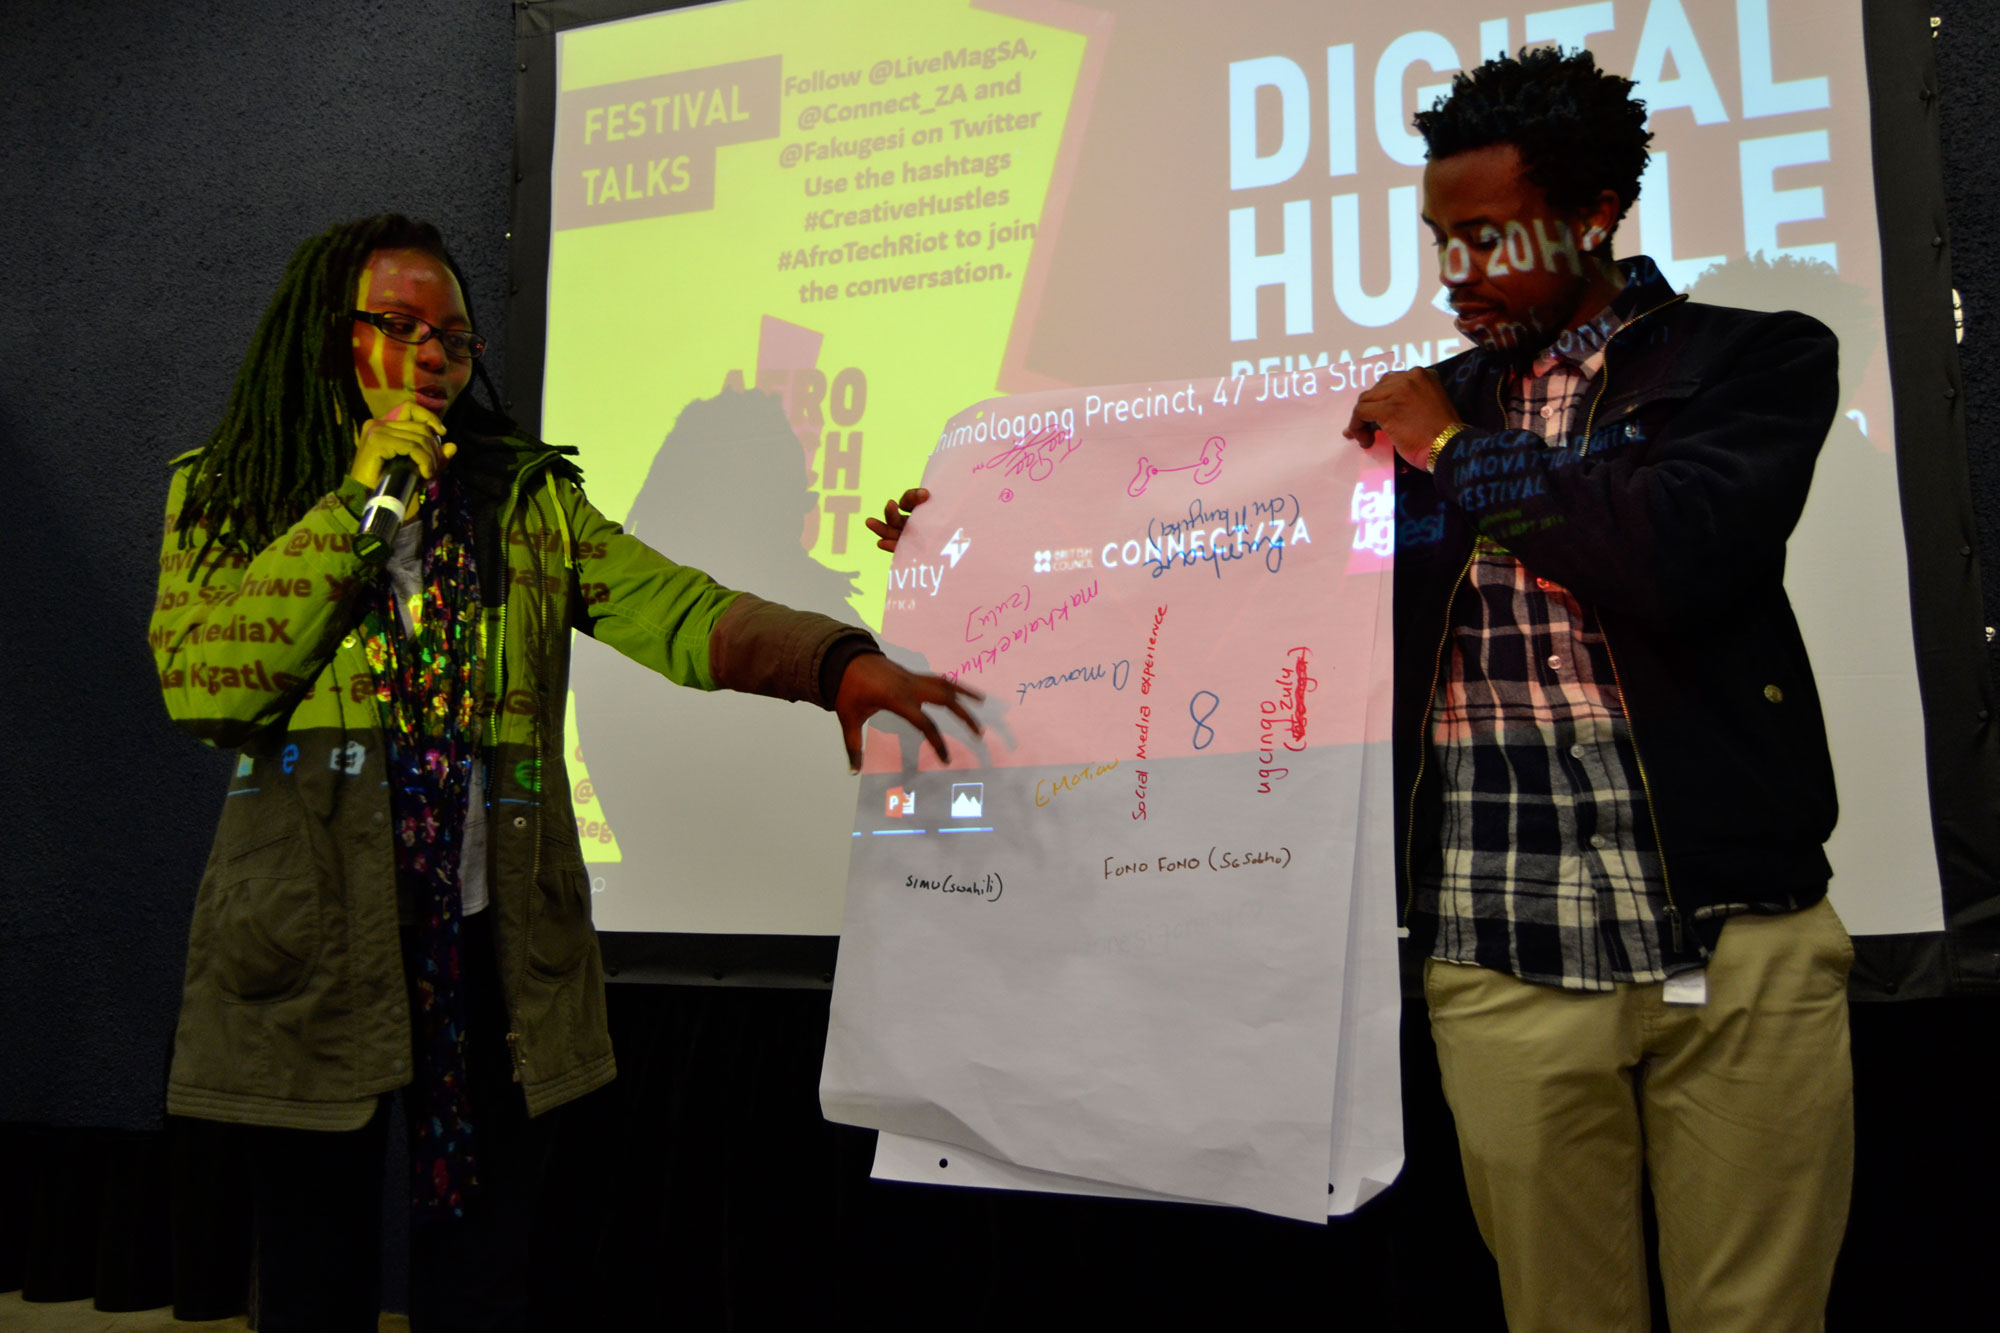 Digital Hustle participants presenting, 24th August 2016. Organised by Livity Africa and Connect ZA